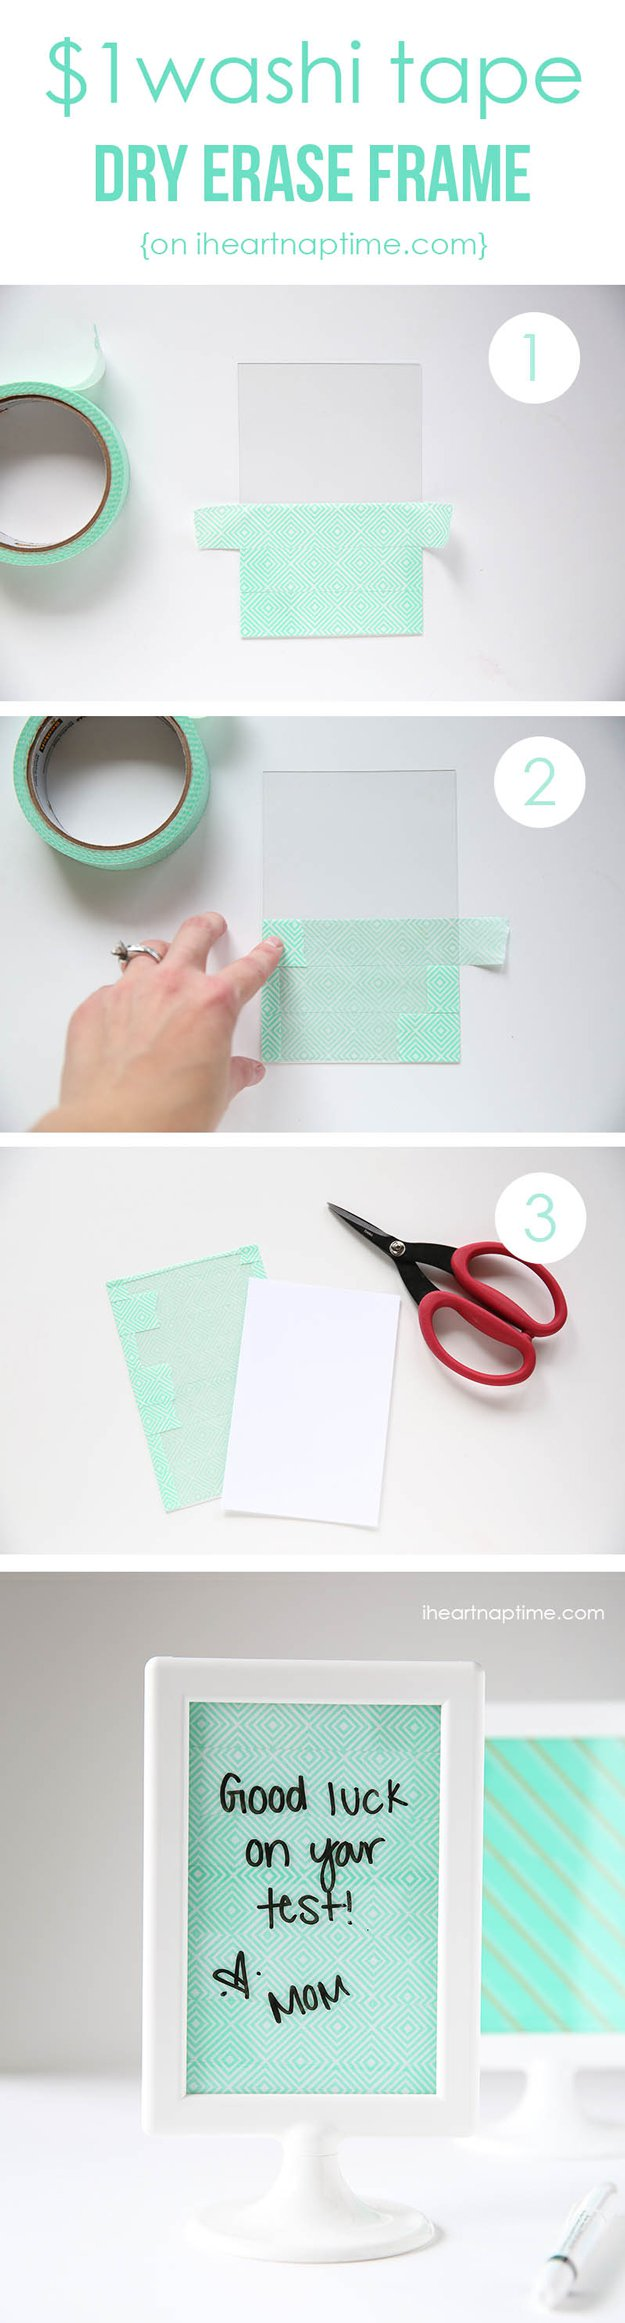 Washi Tape Crafts - Cute DIY Dry Erase Frame - Wall Art, Frames, Cards, Pencils, Room Decor and DIY Gifts, Back To School Supplies - Creative, Fun Craft Ideas for Teens, Tweens and Teenagers - Step by Step Tutorials and Instructions #washitape #crafts #cheapcrafts #teencrafts